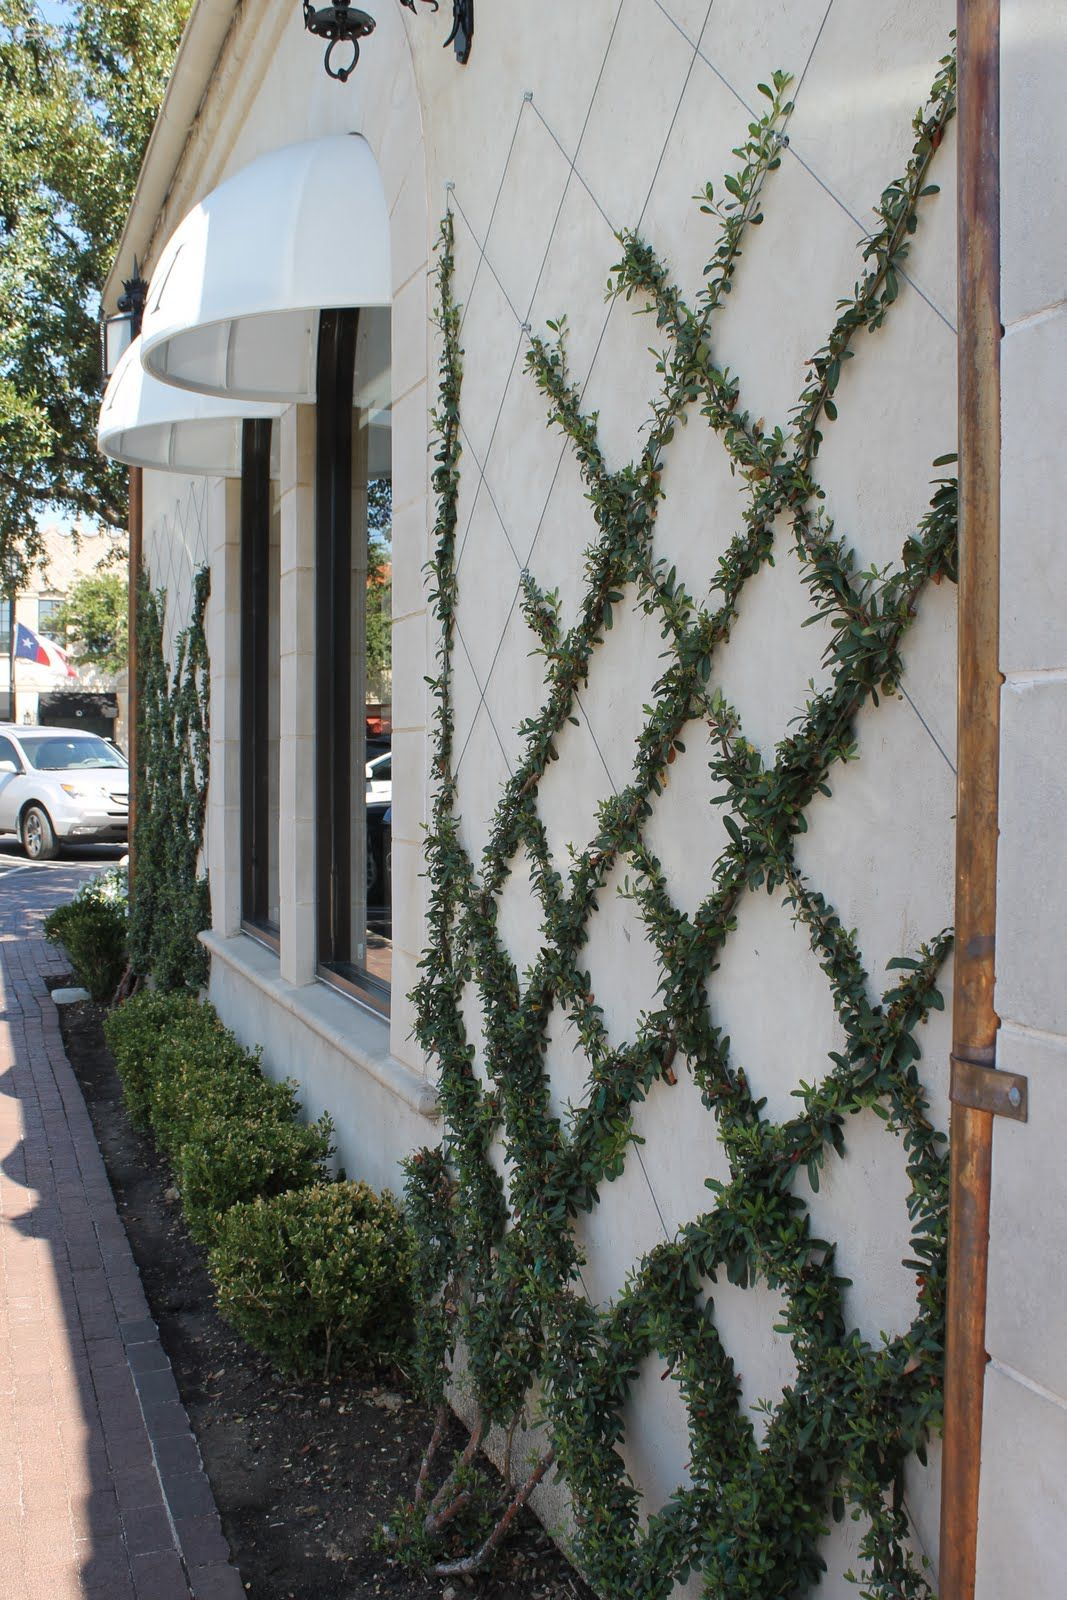 fcc2ec29d0a4a9b10be0184f4036b6bf - How To Get A Vine To Grow Up A Wall